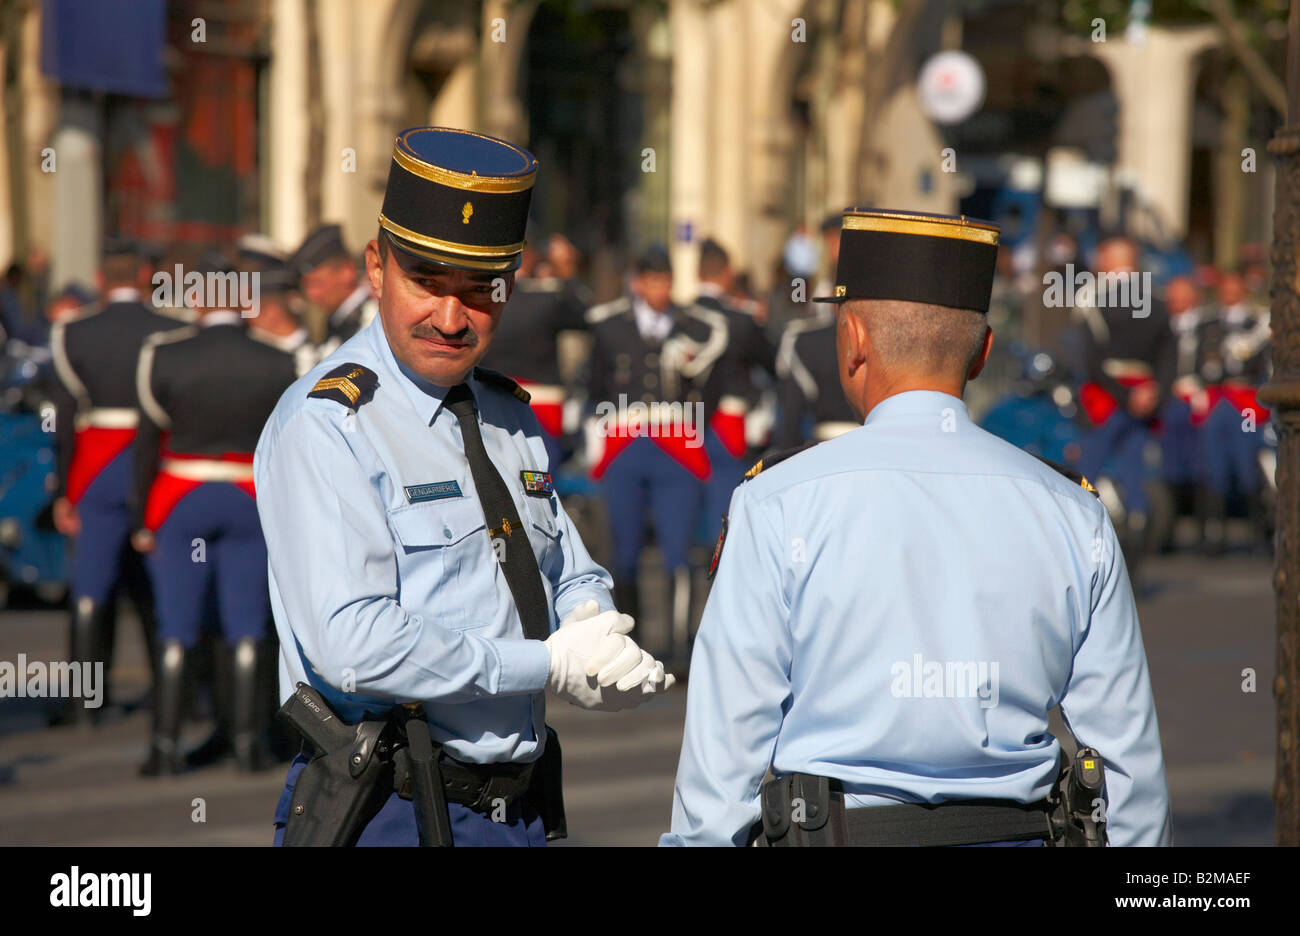 Gendarmerie at the Champs Elysees on Bastille Day July 14th 2008 Paris France - Stock Image